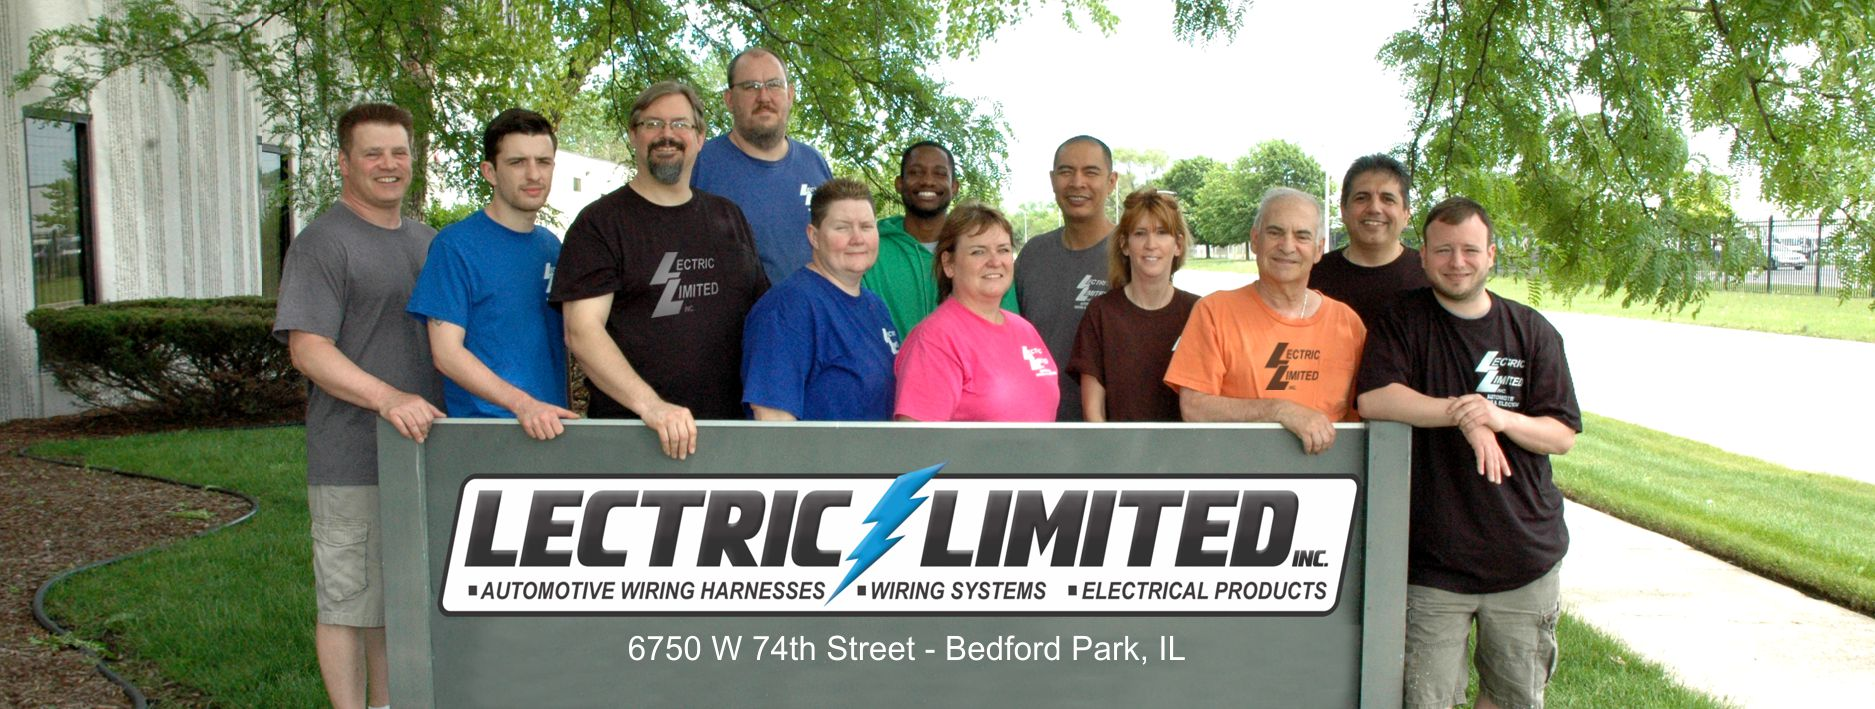 About Lectric Limited and Our Staff